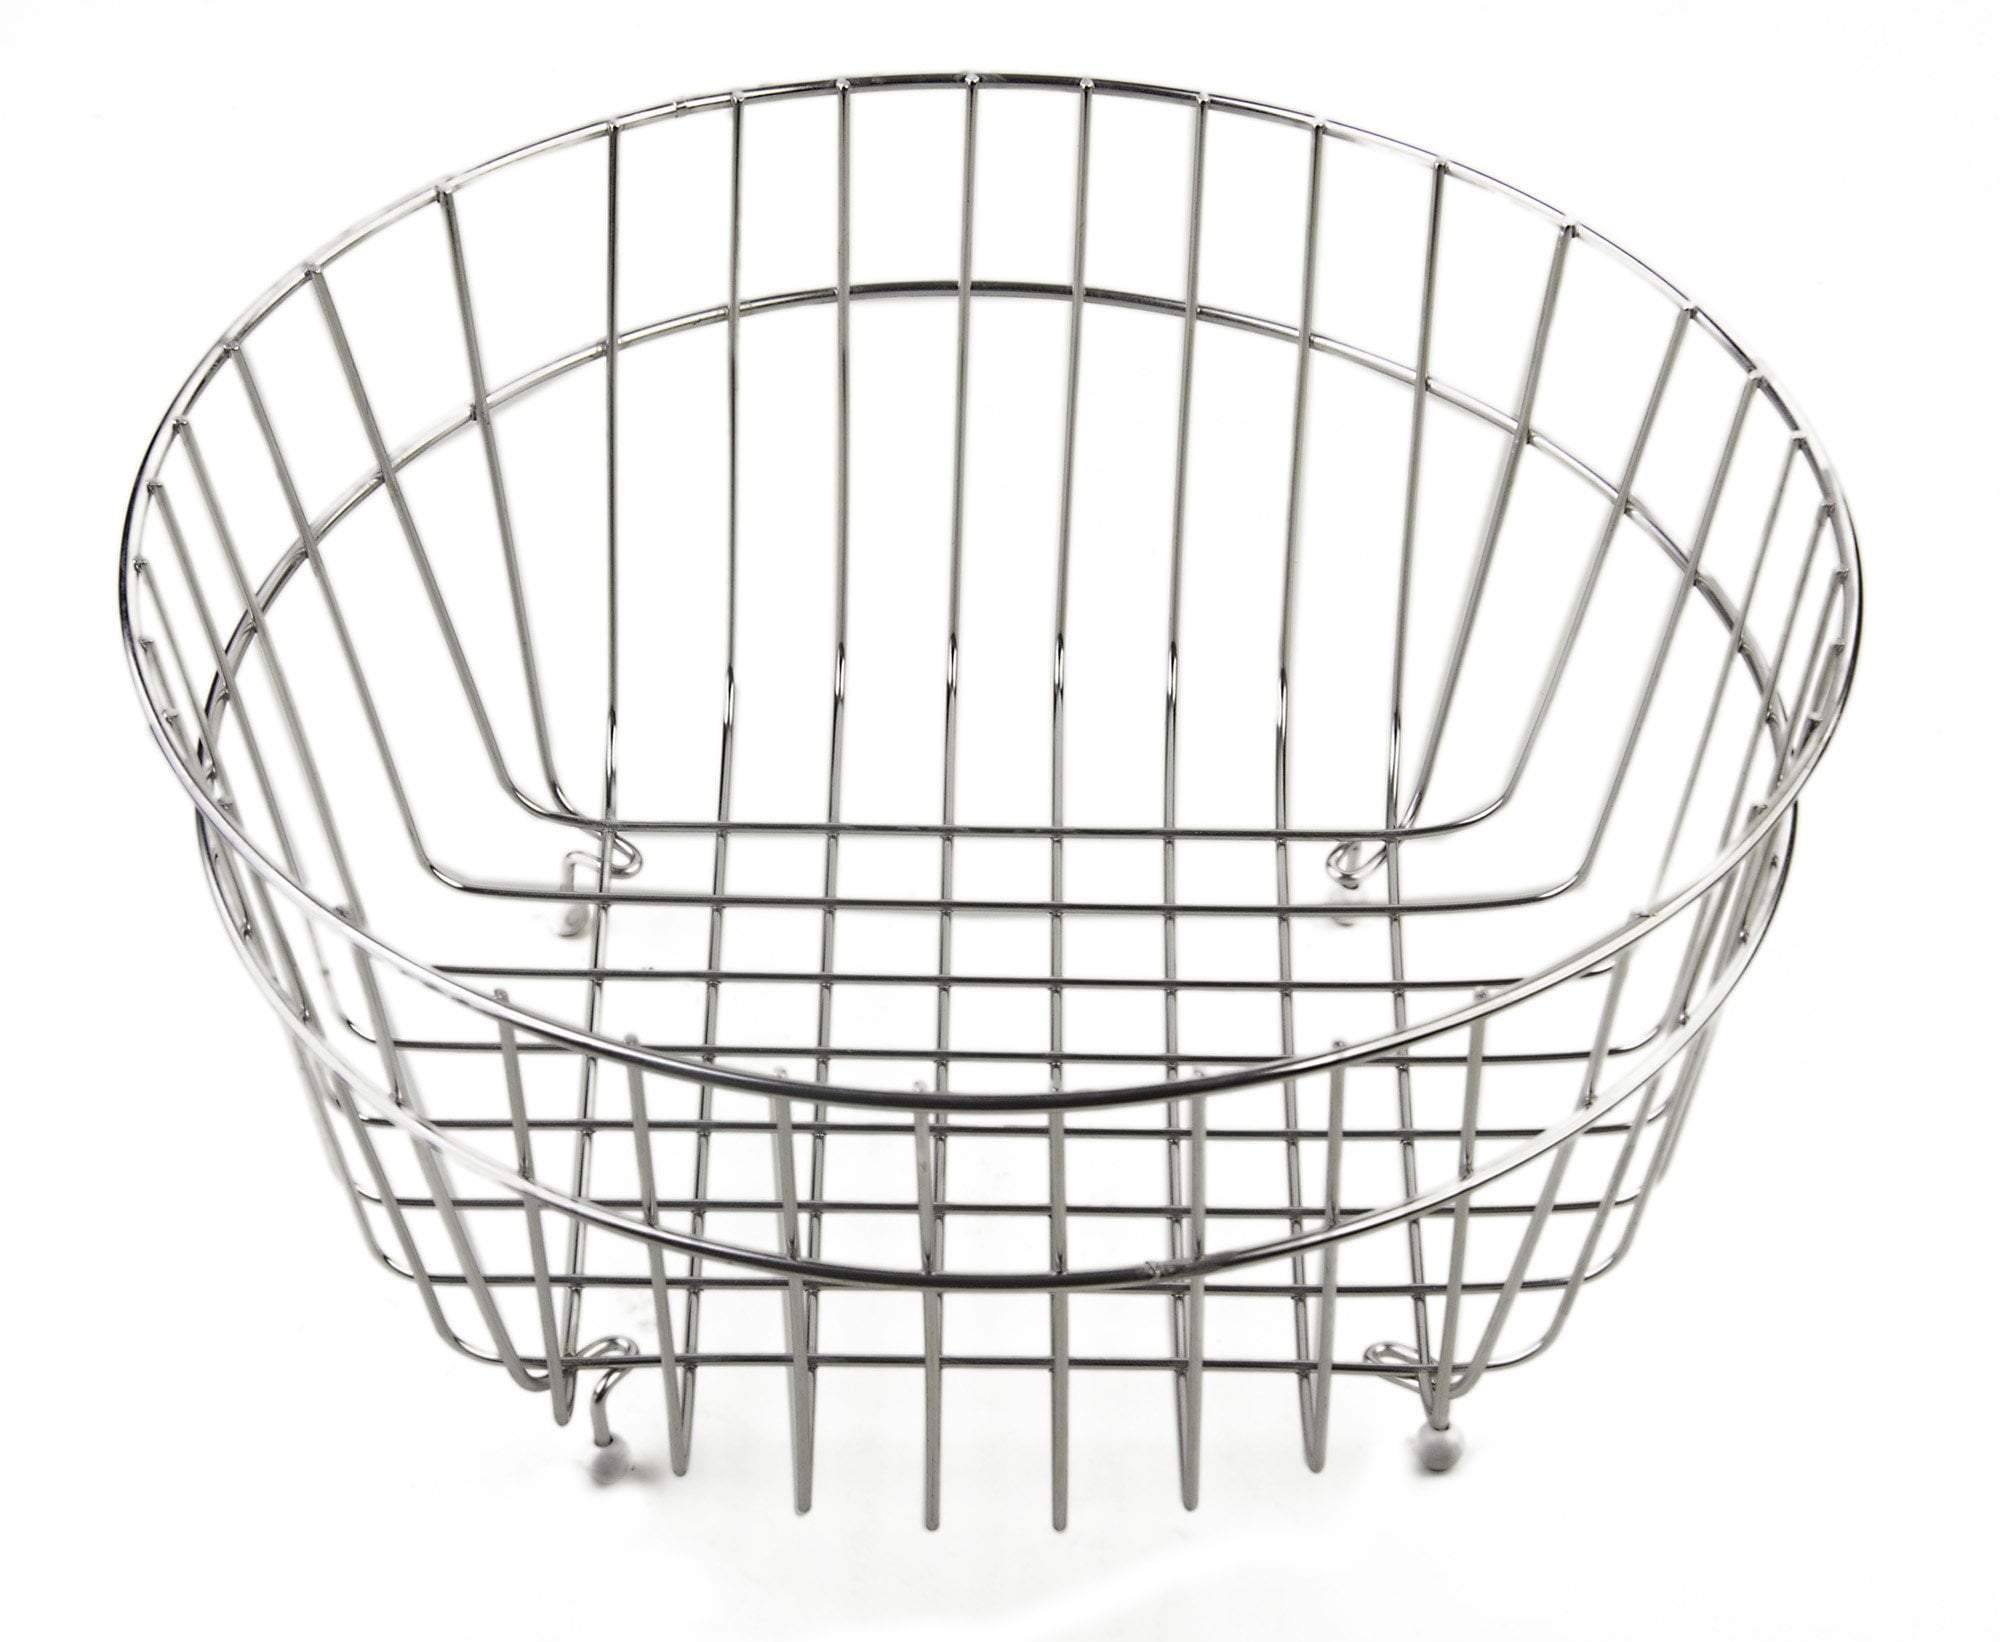 ALFI brand AB40SSB Round Stainless Steel Basket for AB1717